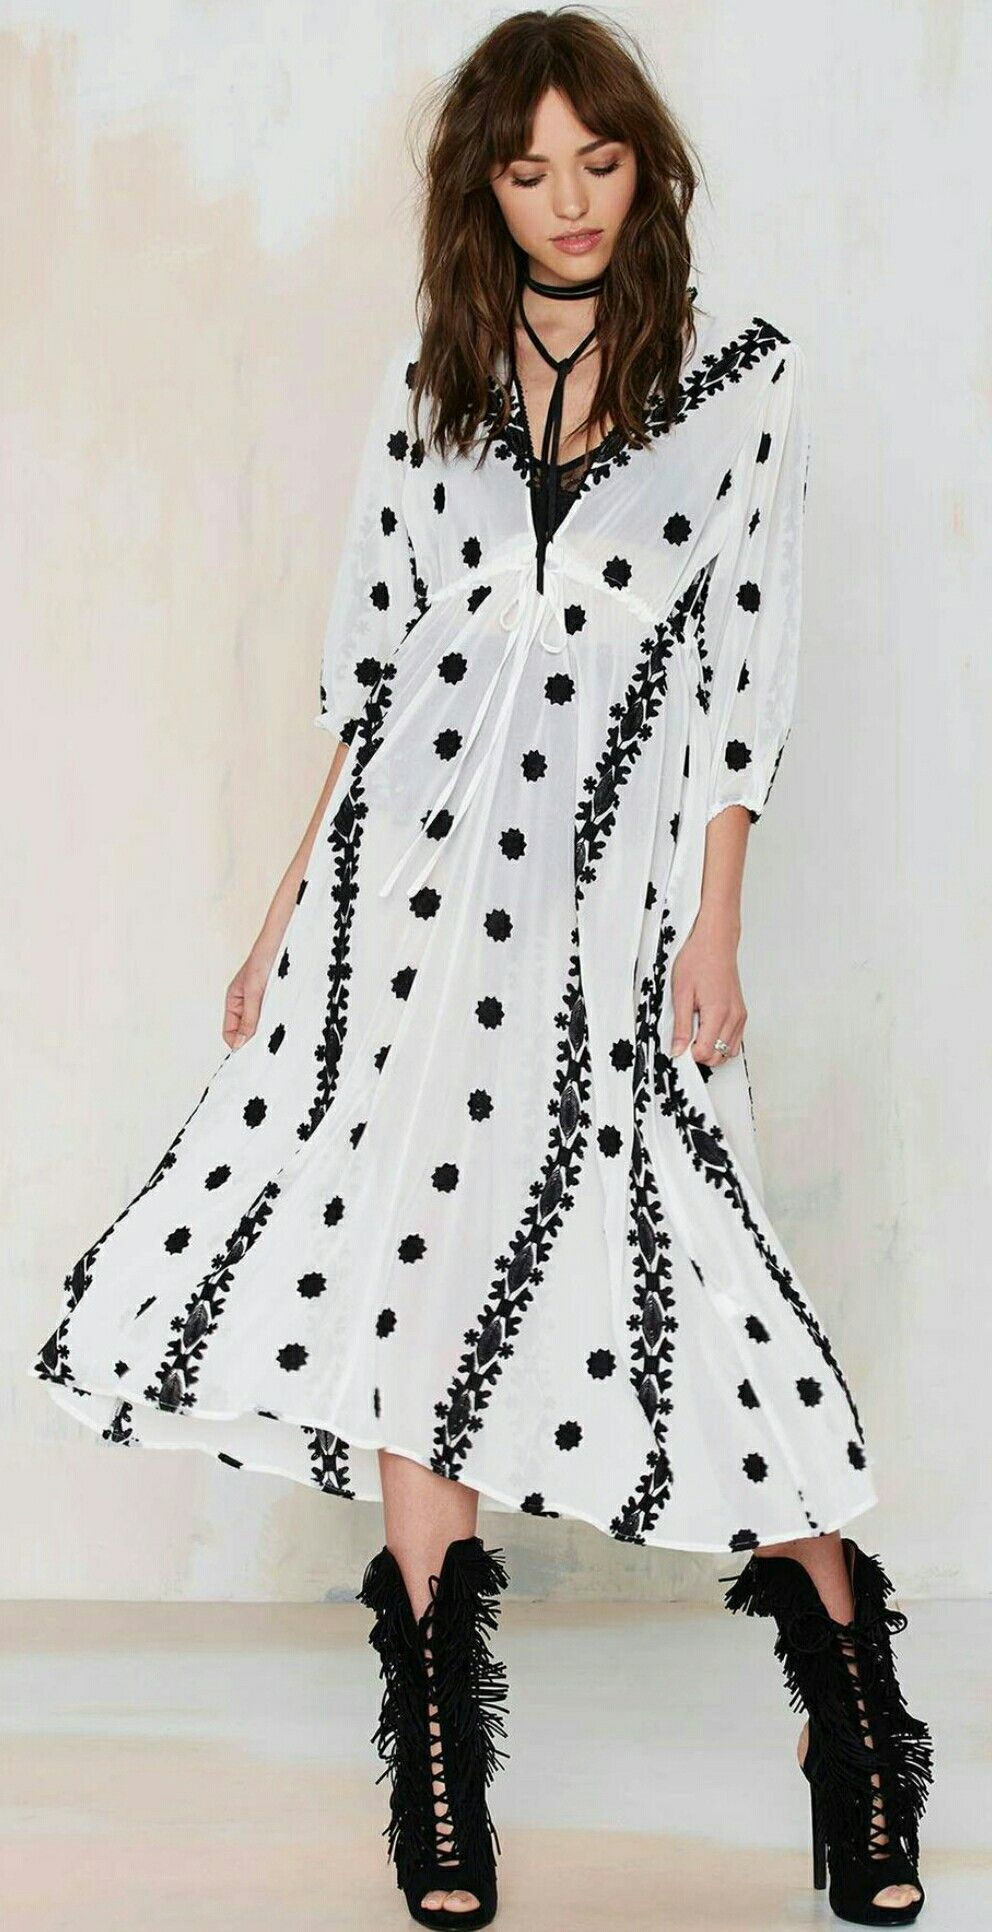 Pin by ansie de wet on all things polka dot pinterest